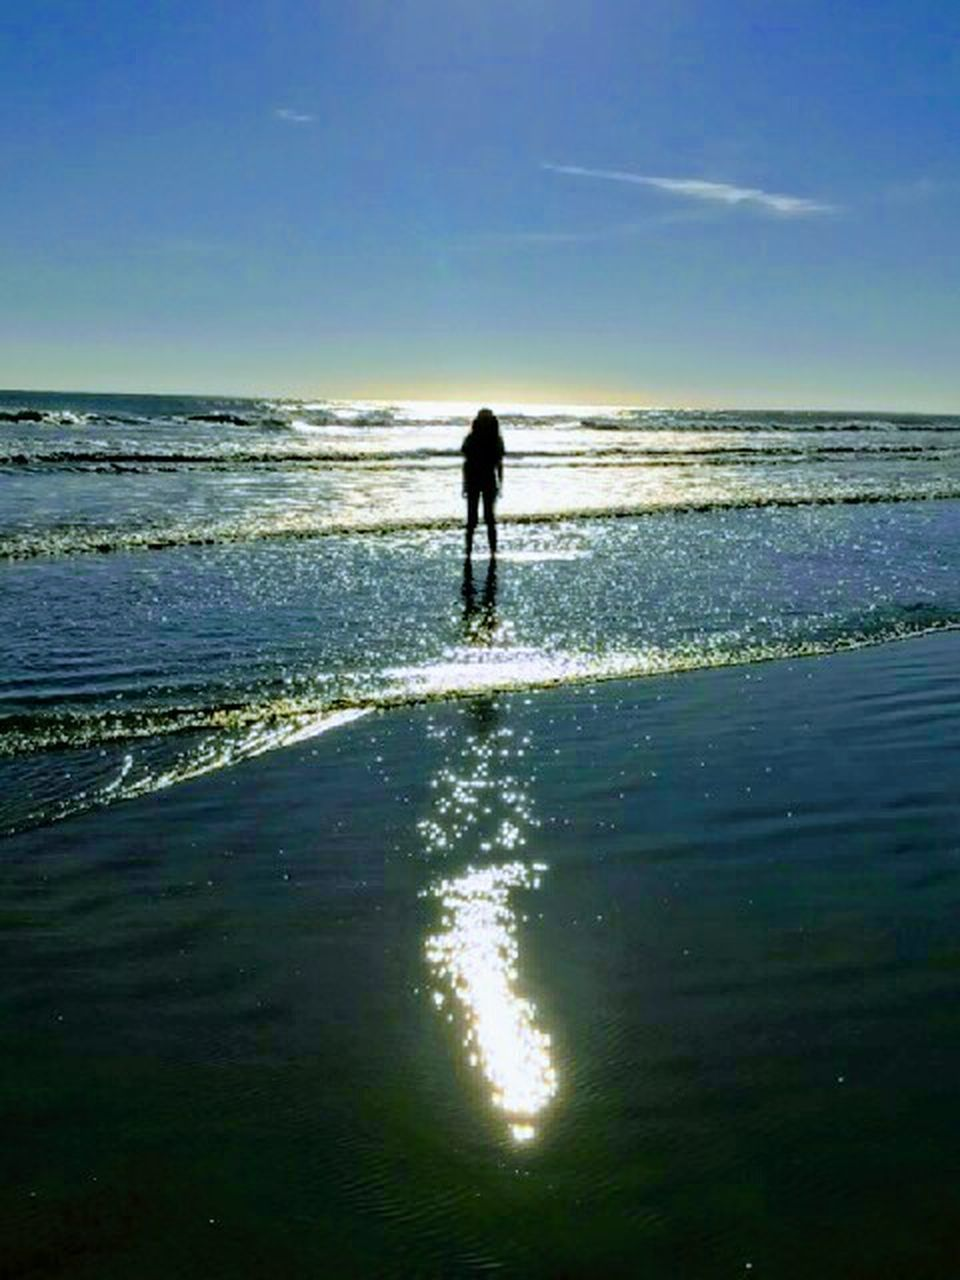 sea, silhouette, beach, horizon over water, nature, water, one person, reflection, scenics, beauty in nature, sky, tranquility, tranquil scene, sunlight, sand, sunset, outdoors, vacations, full length, wave, day, people